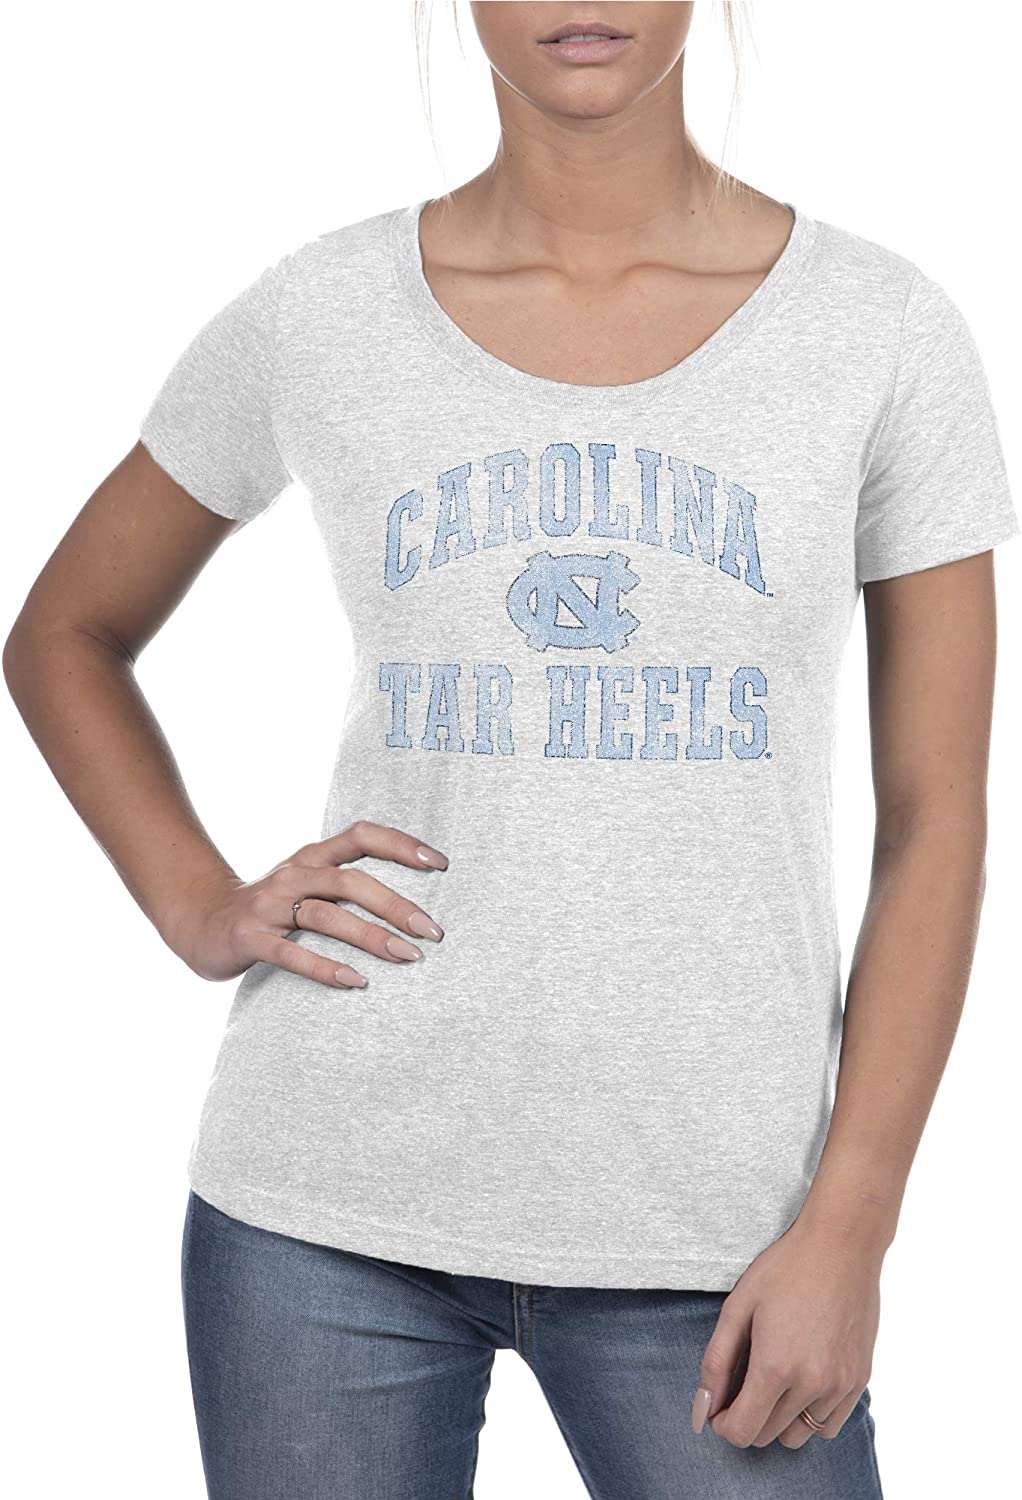 Top of the World NCAA Womens Trim Modern Fit Premium Triblend Short Sleeve Scoop Neck Team Color Tee